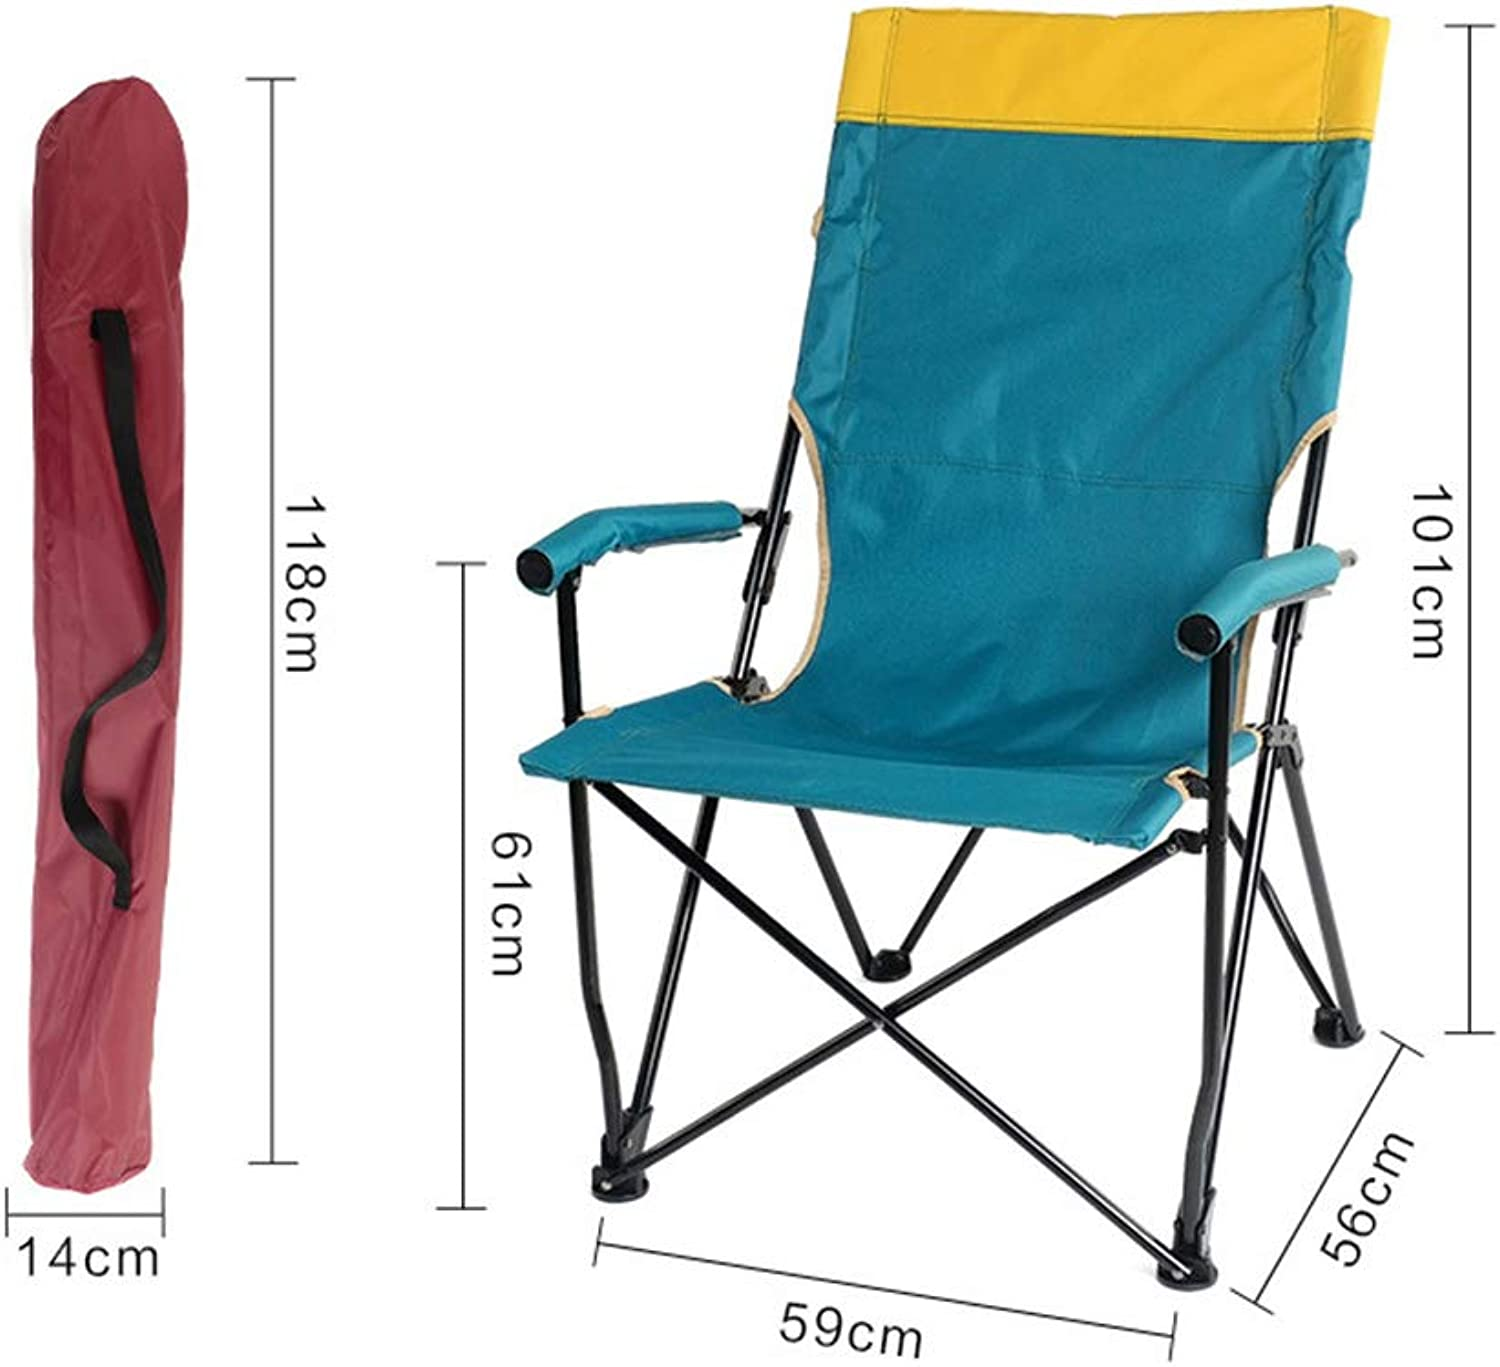 Outdoor Fishing Chair, Summer Travel Folding Camping Barbecue high Back Chair Portable Fishing Chair Stool Beach Lounge Chair,greenspellyellow